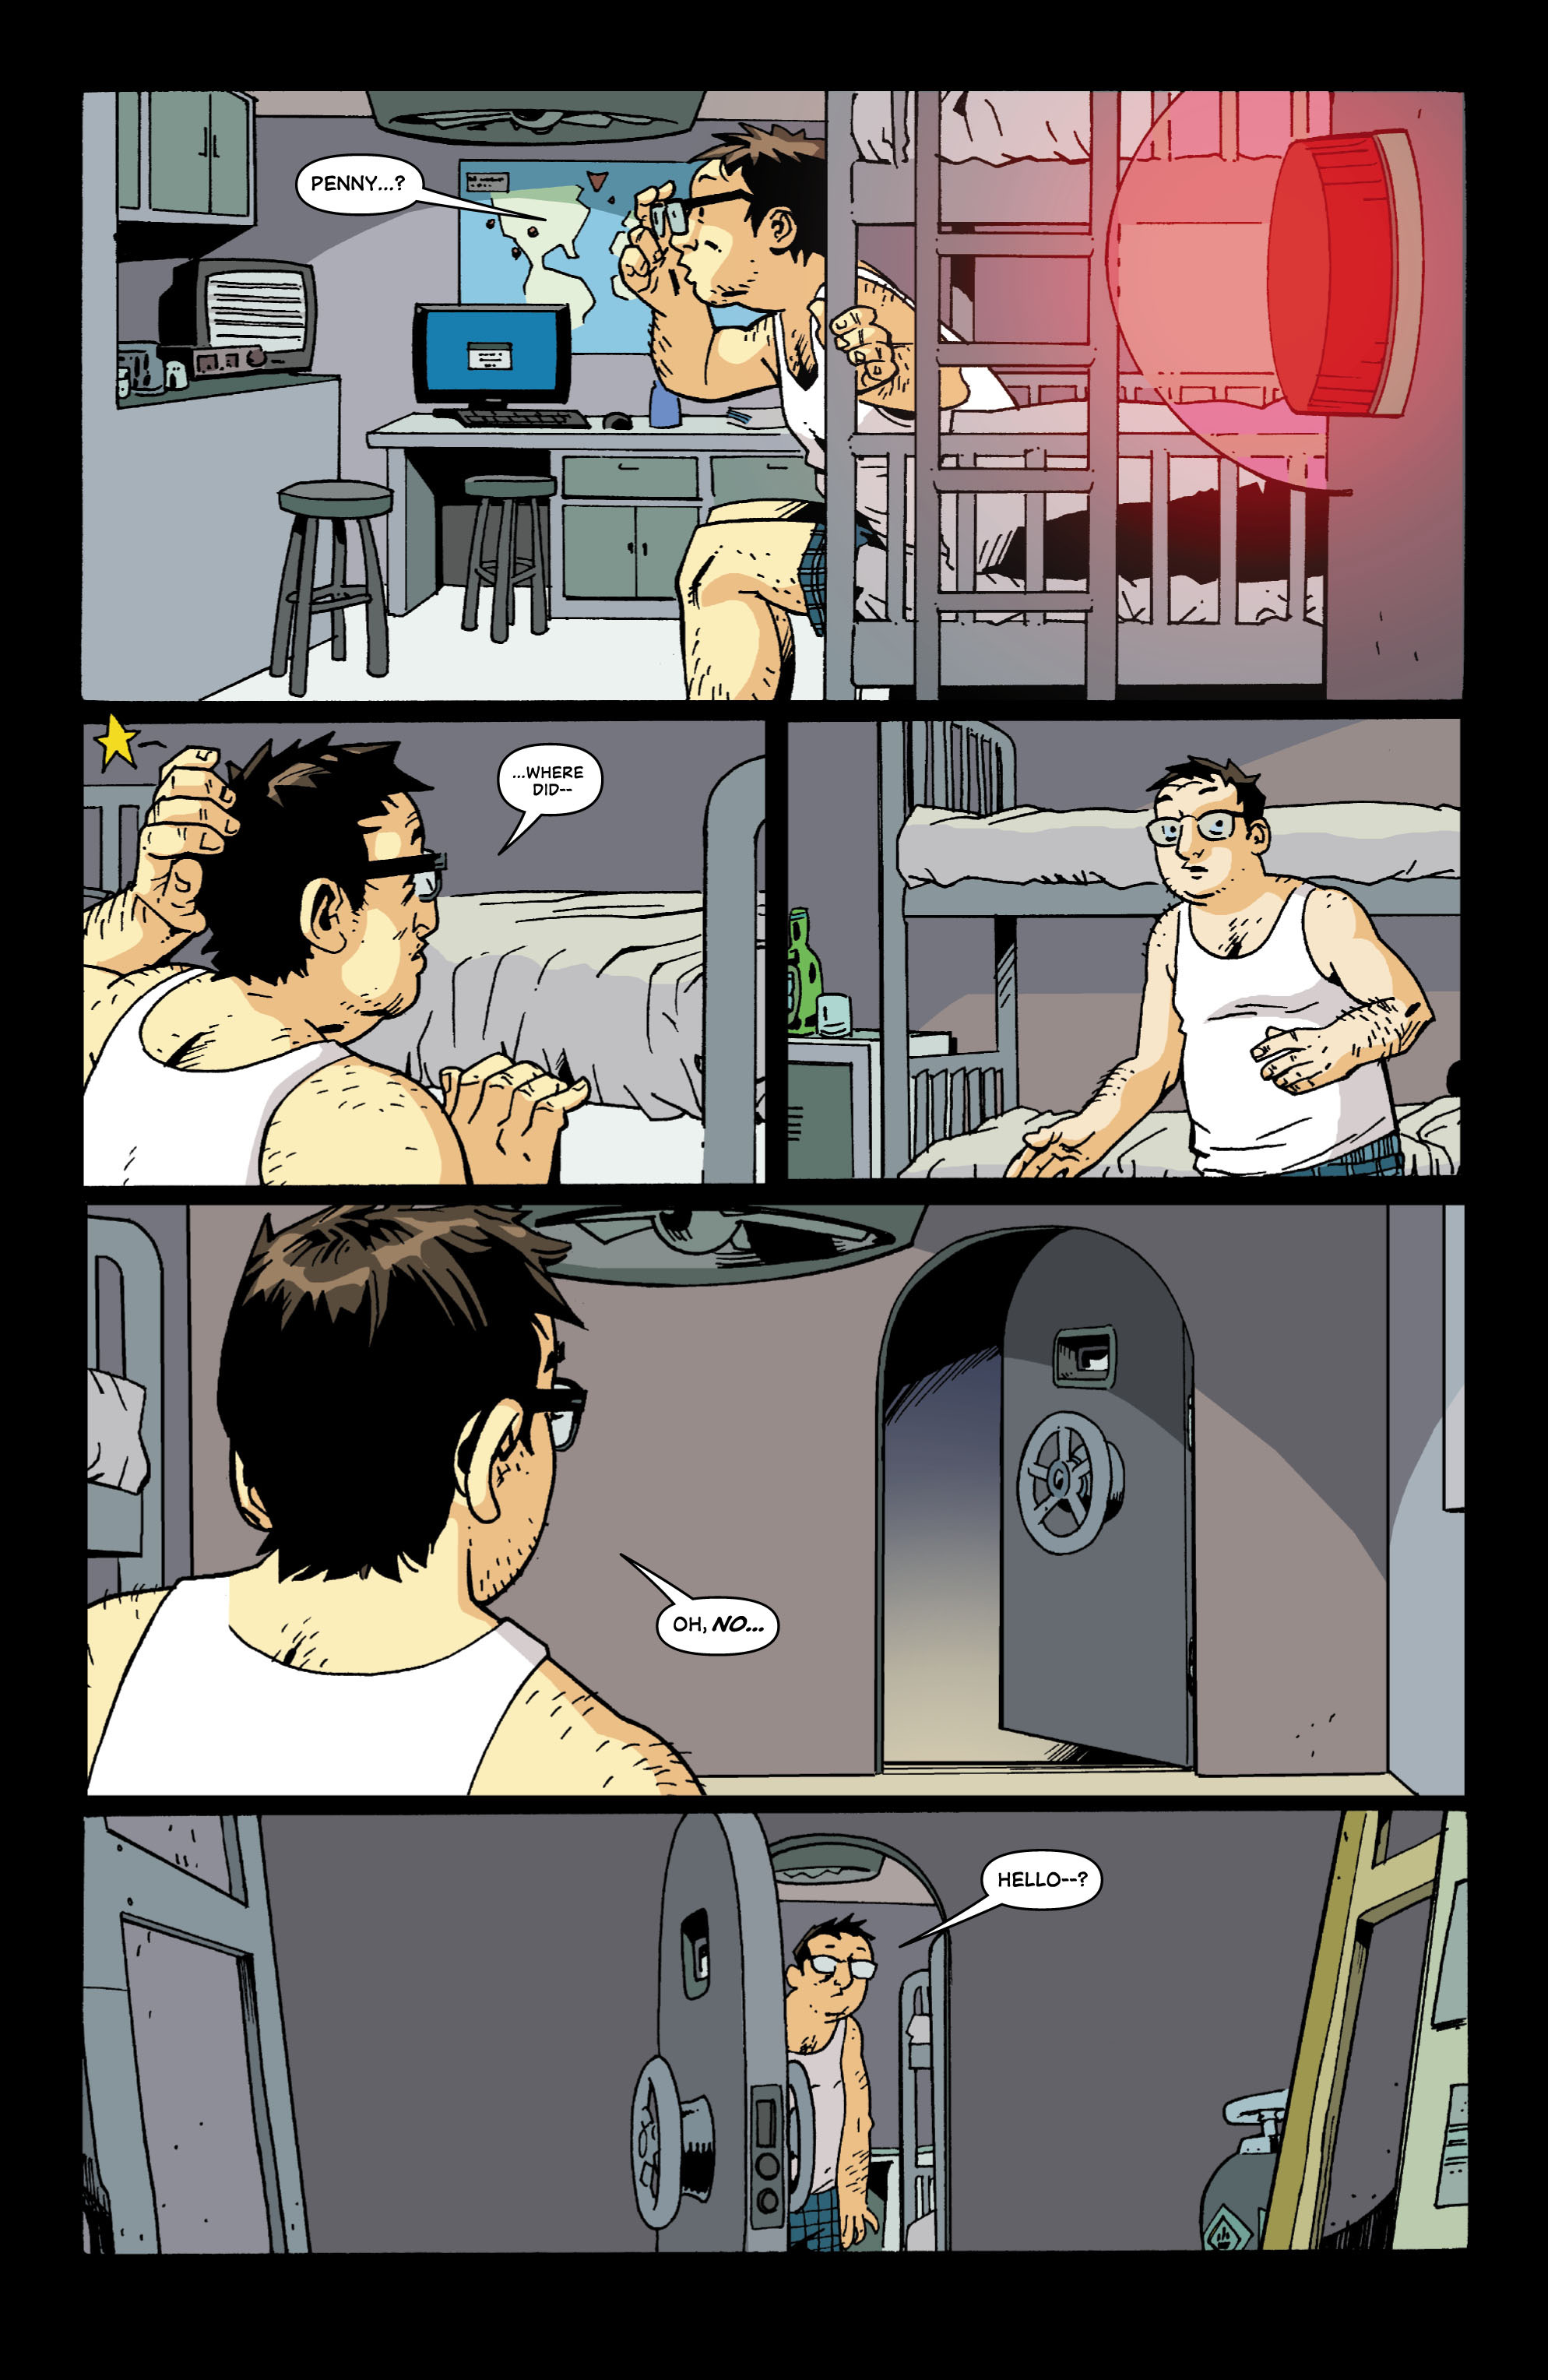 Read online Red Herring comic -  Issue #6 - 8